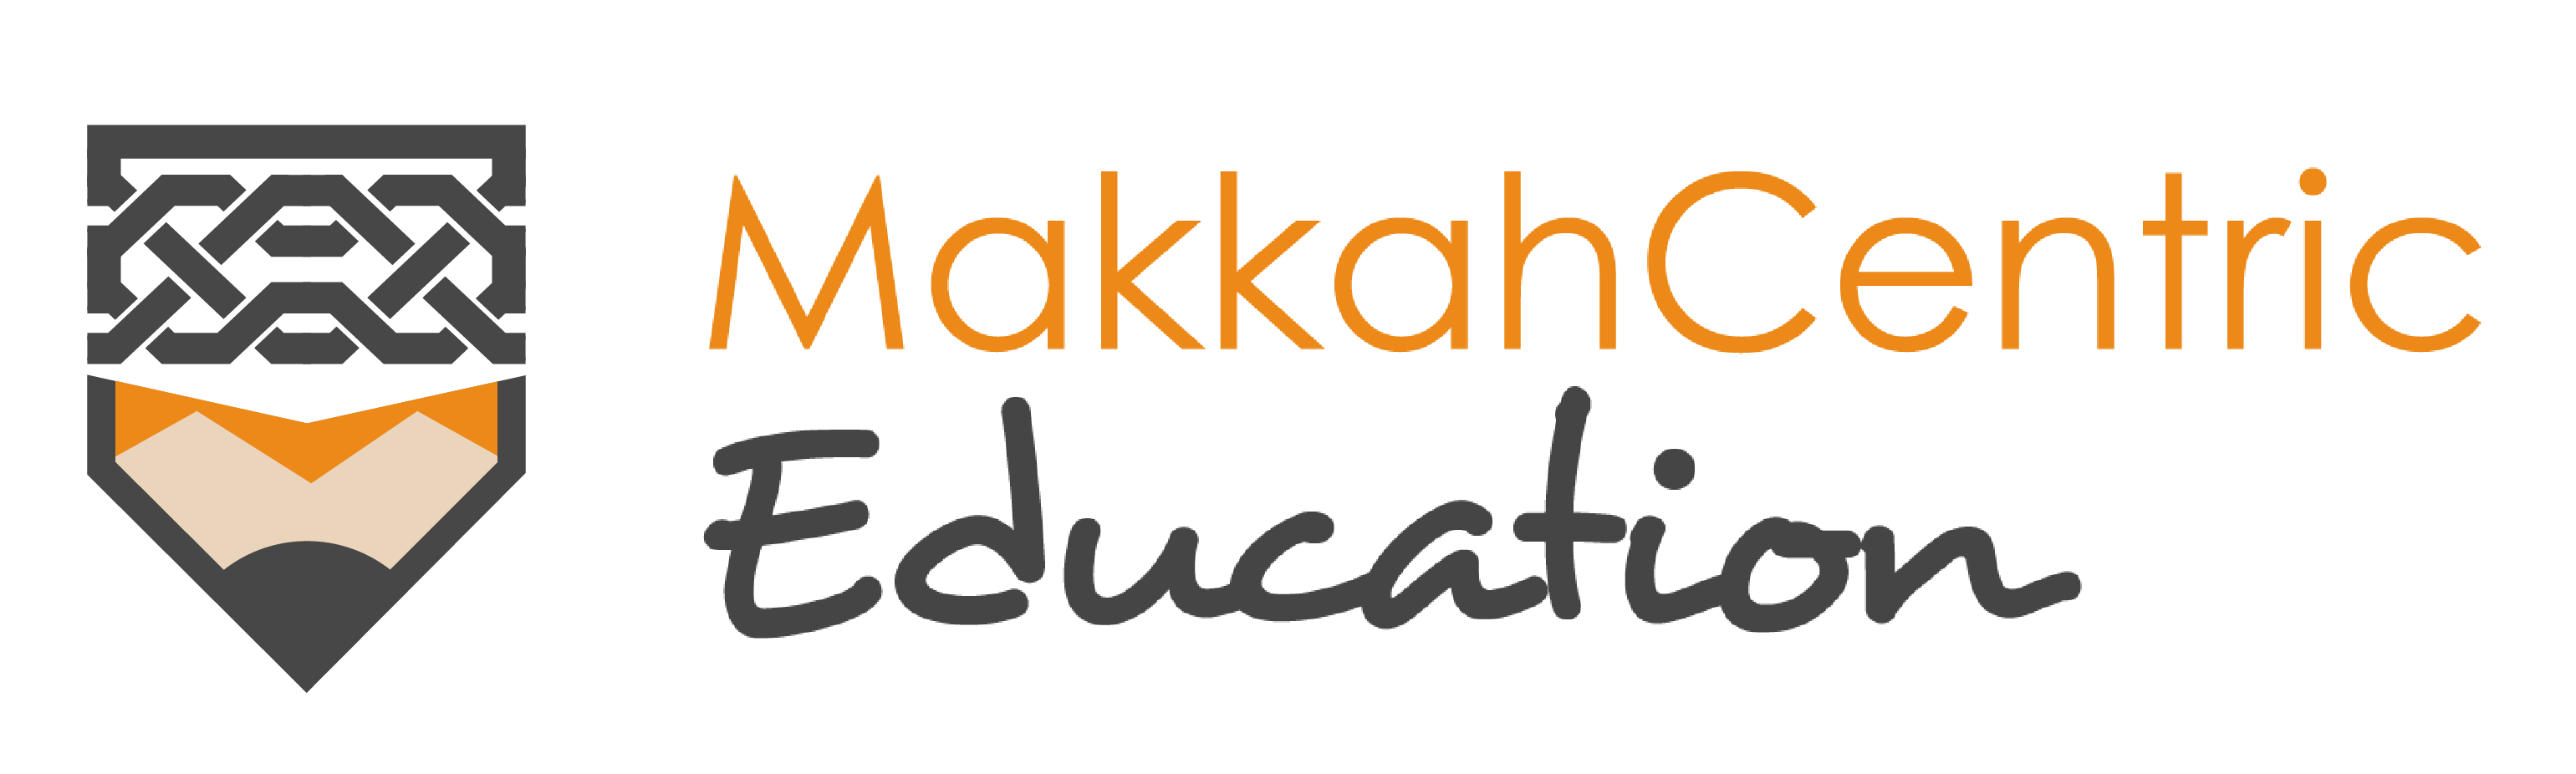 MakkahCentric Education